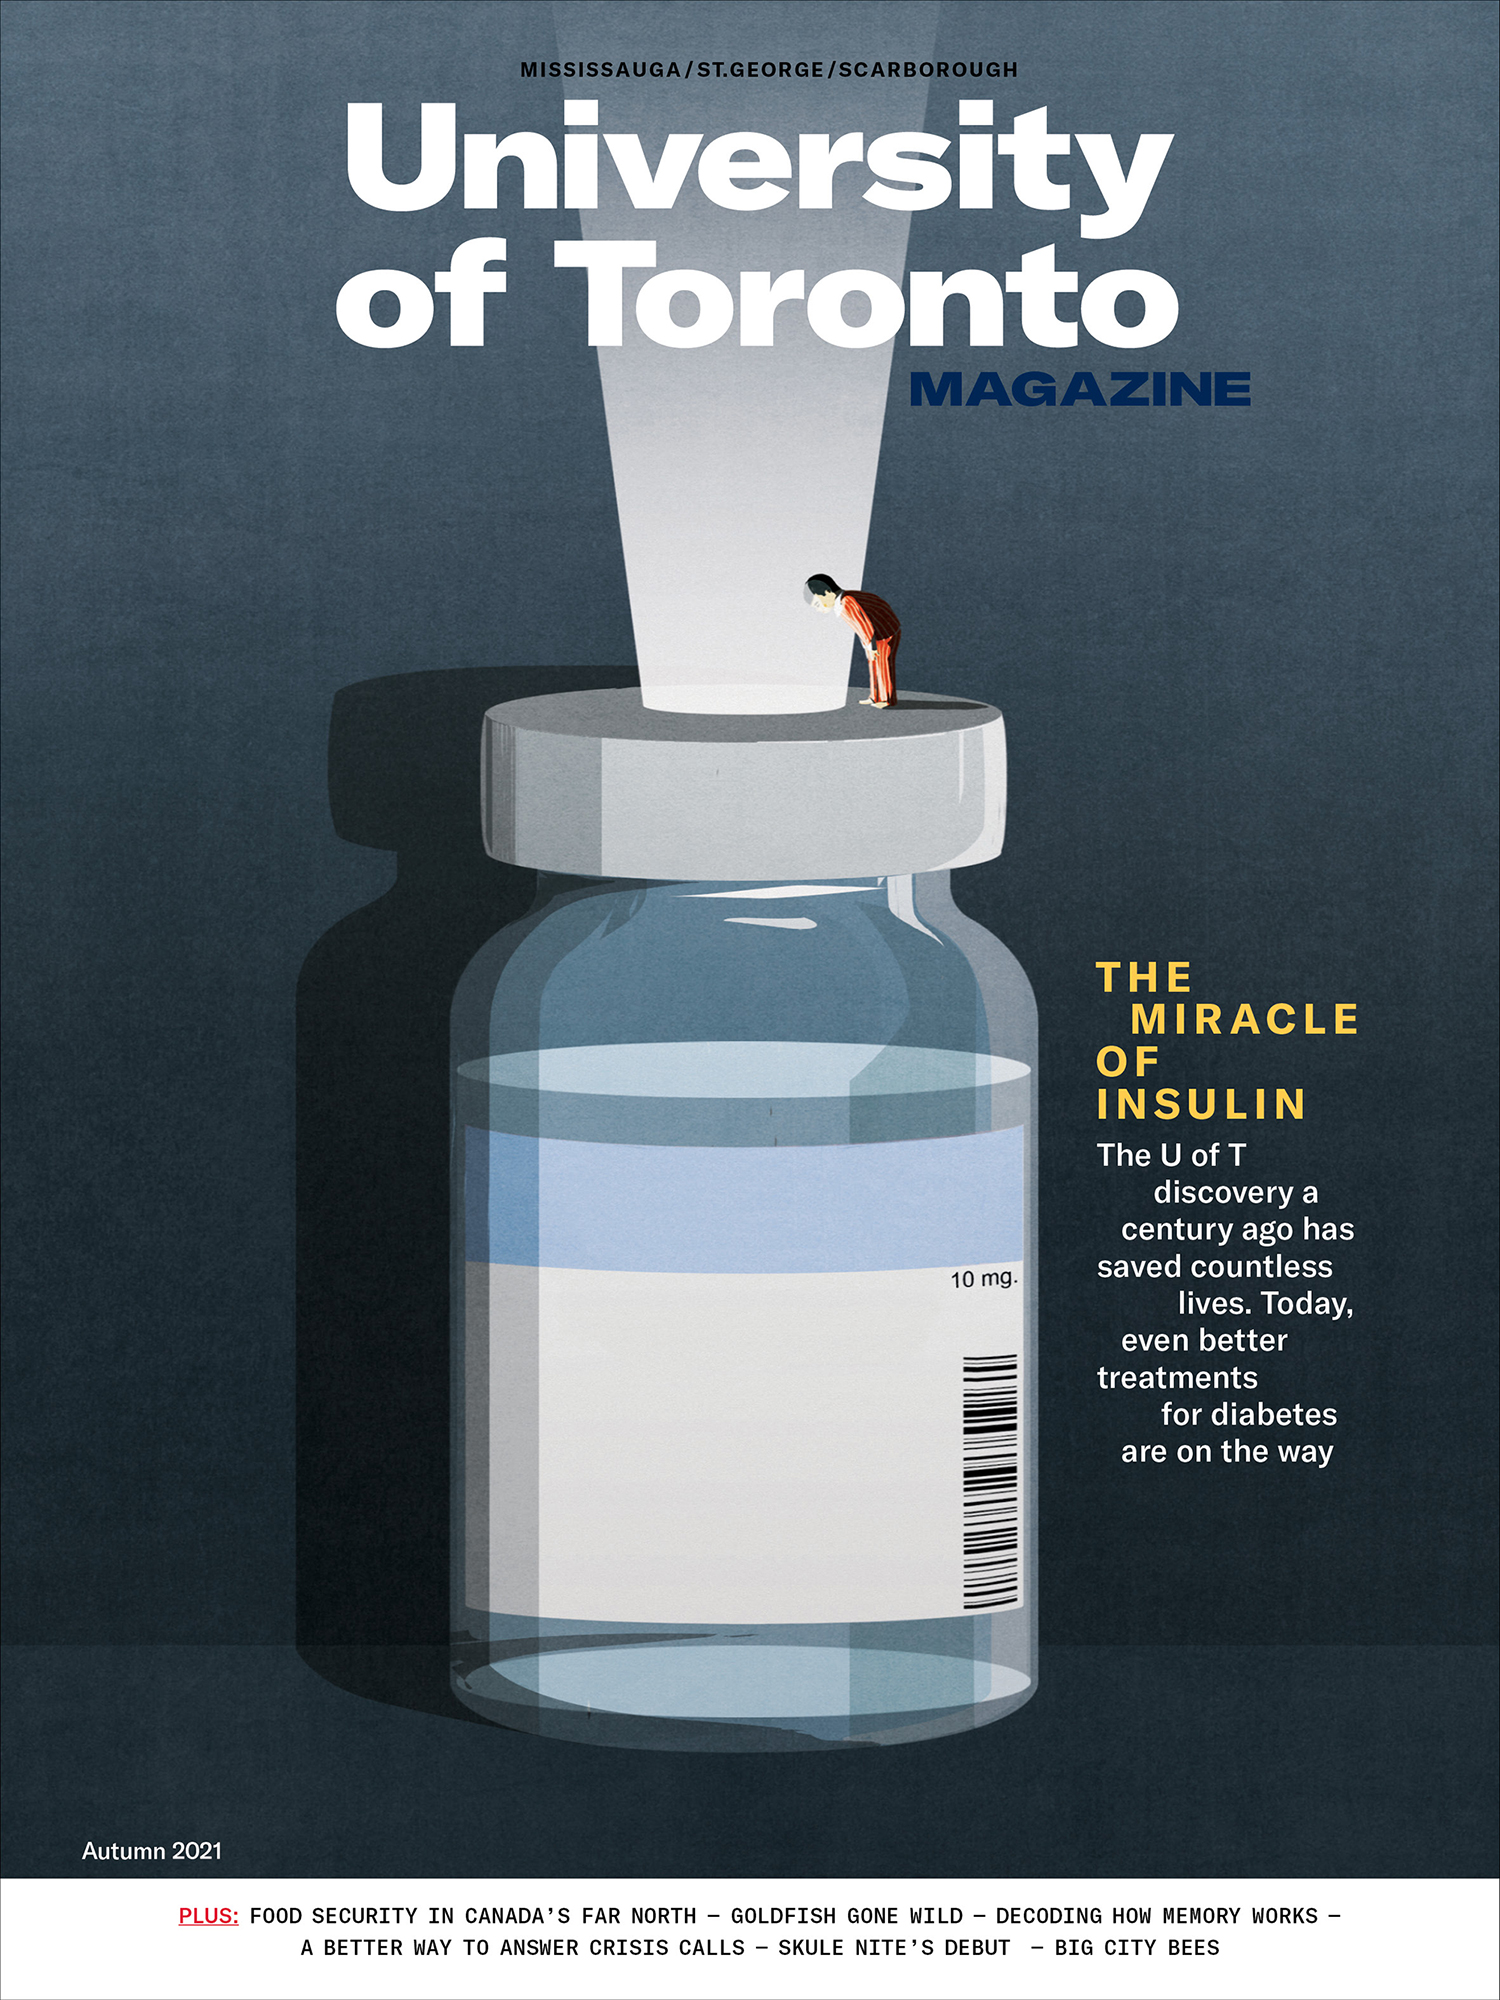 Cover page of University of Toronto Magazine's Autumn 2021 issue, with an illustration of a giant vial of insulin and a tiny figure standing on the cap looking down a hole in the centre, through which shines a light